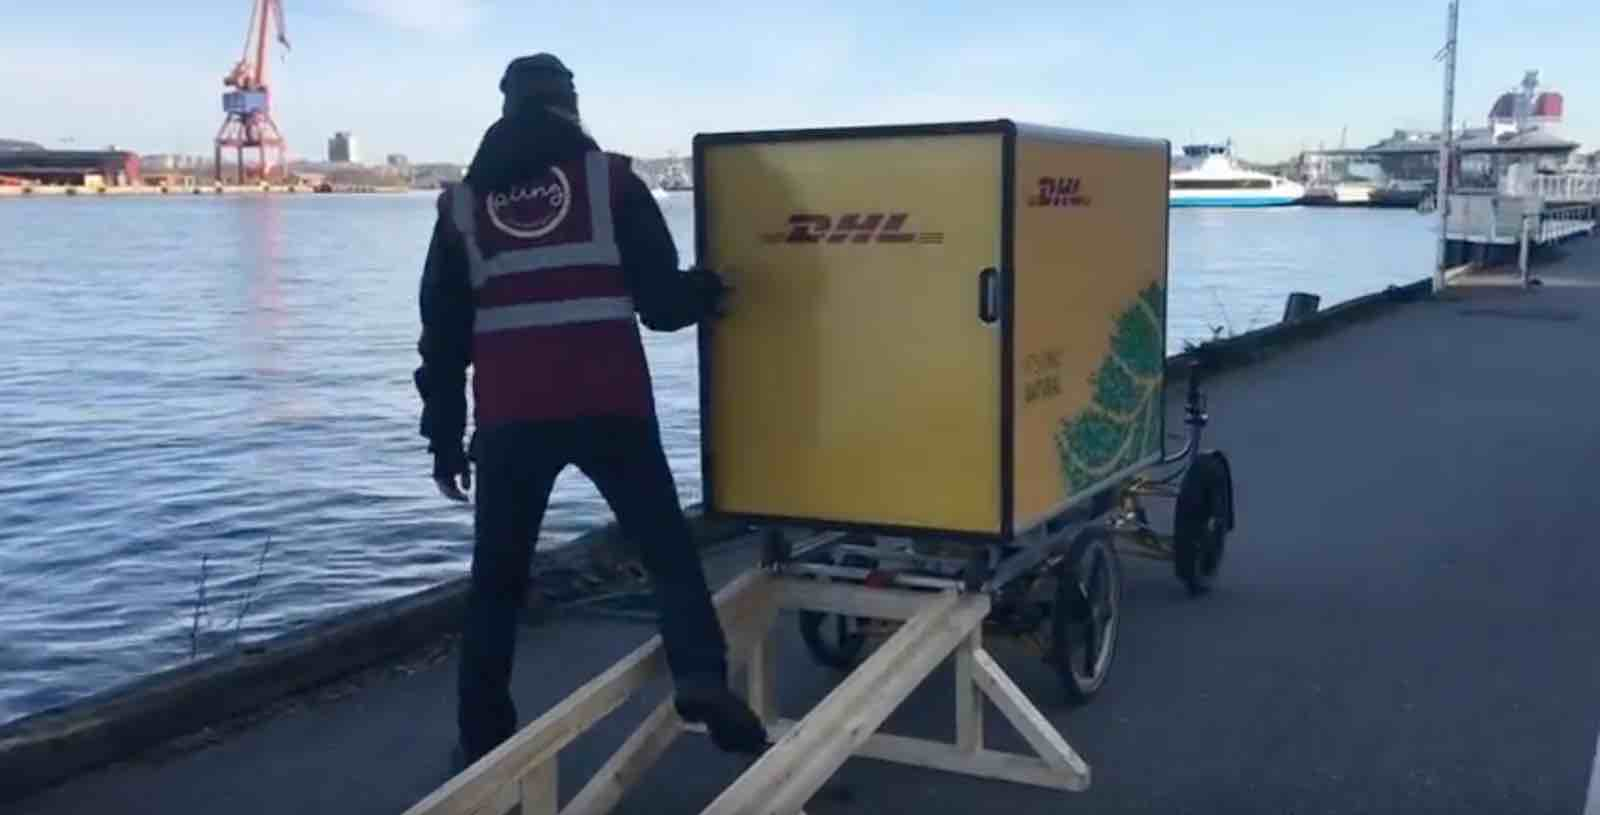 DHL Electric Cargo bike for last mile delivery - A last mile solution